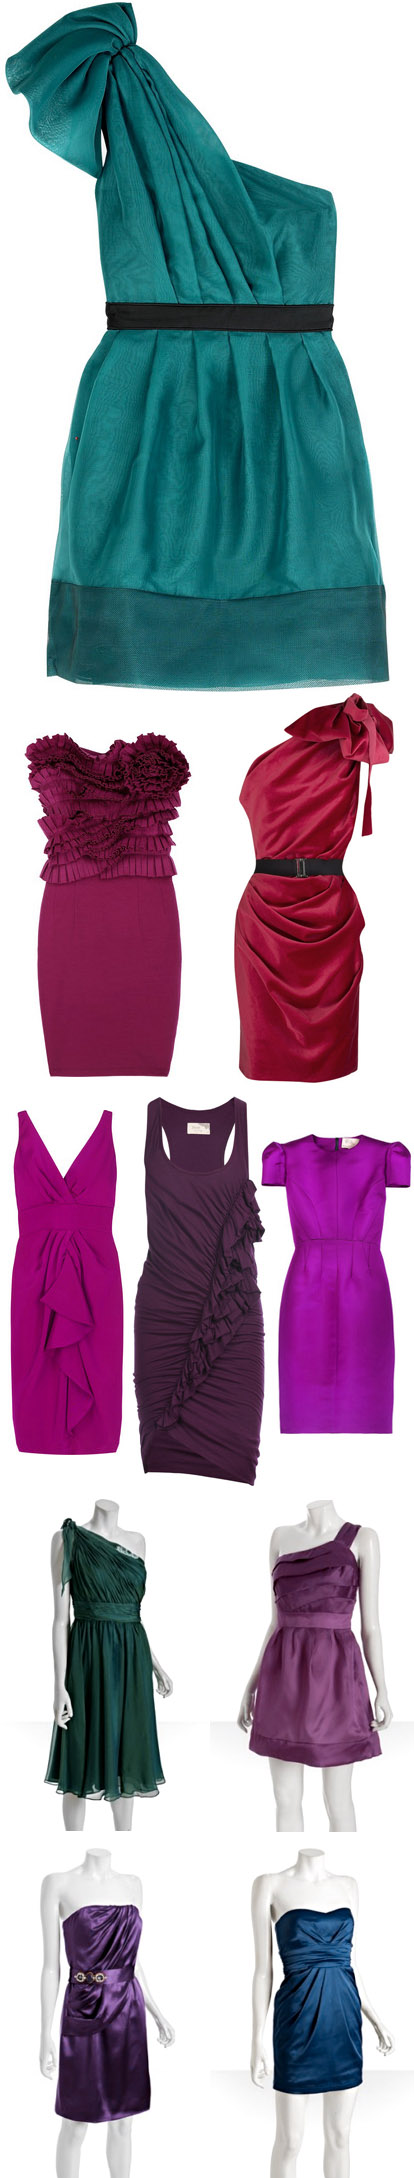 Jewel toned fall coctail and bridesmaids dresses, sapphire blue, emerald green, fuschia, plum, purple